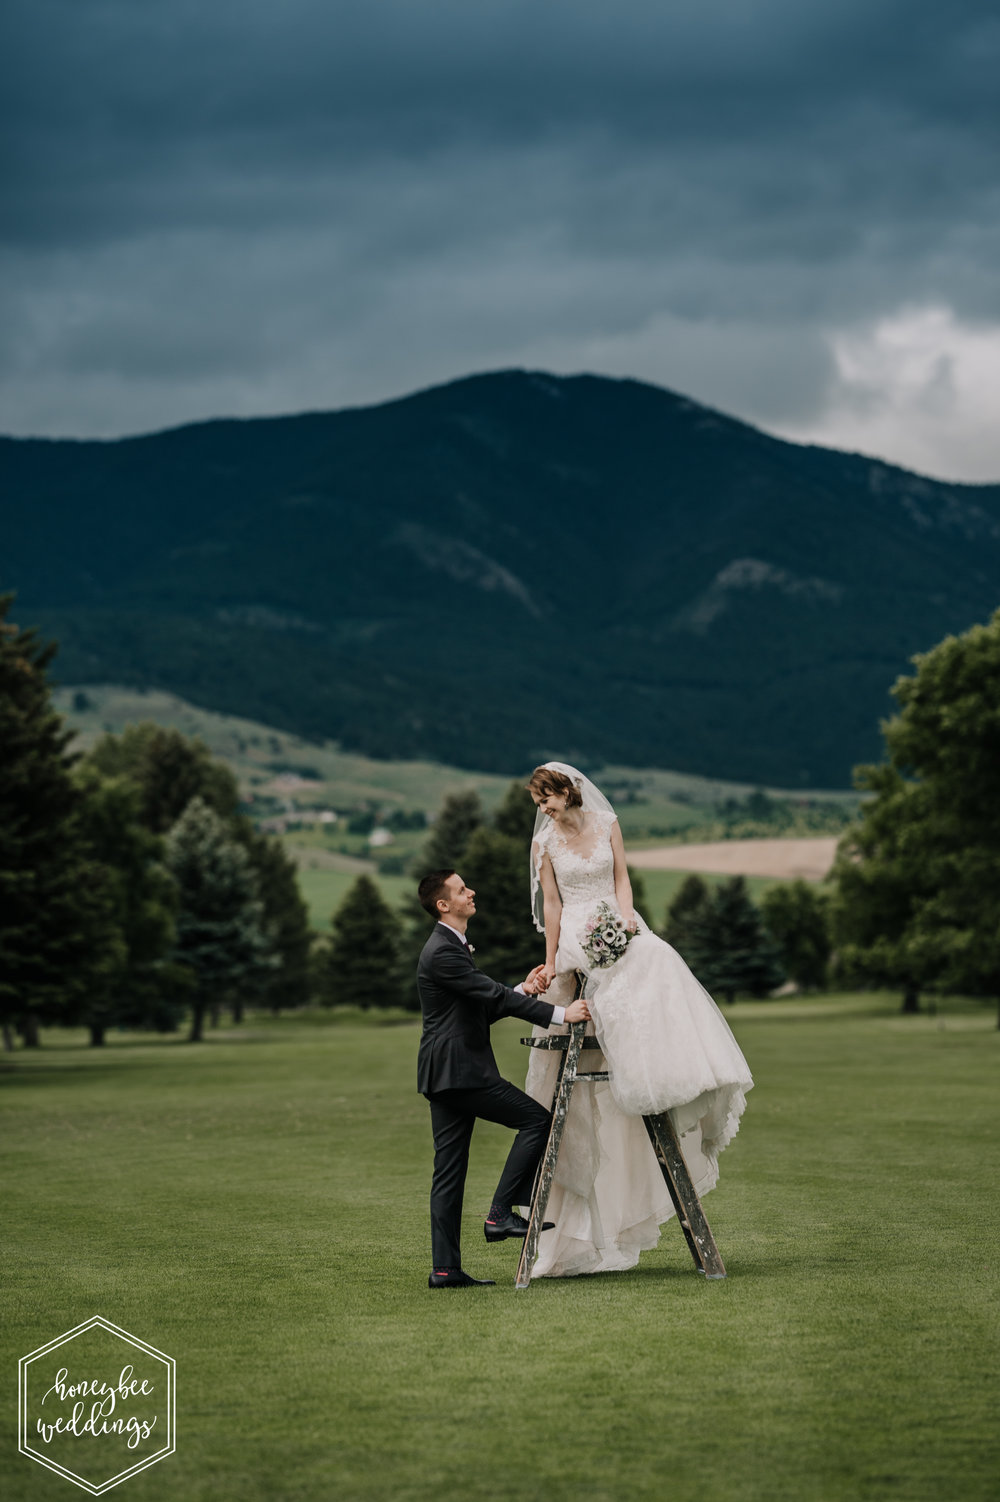 796 Riverside Country Club Wedding_Montana Wedding Photographer_Lauren Jackson + Evan Ivaldi 2018-6810.jpg